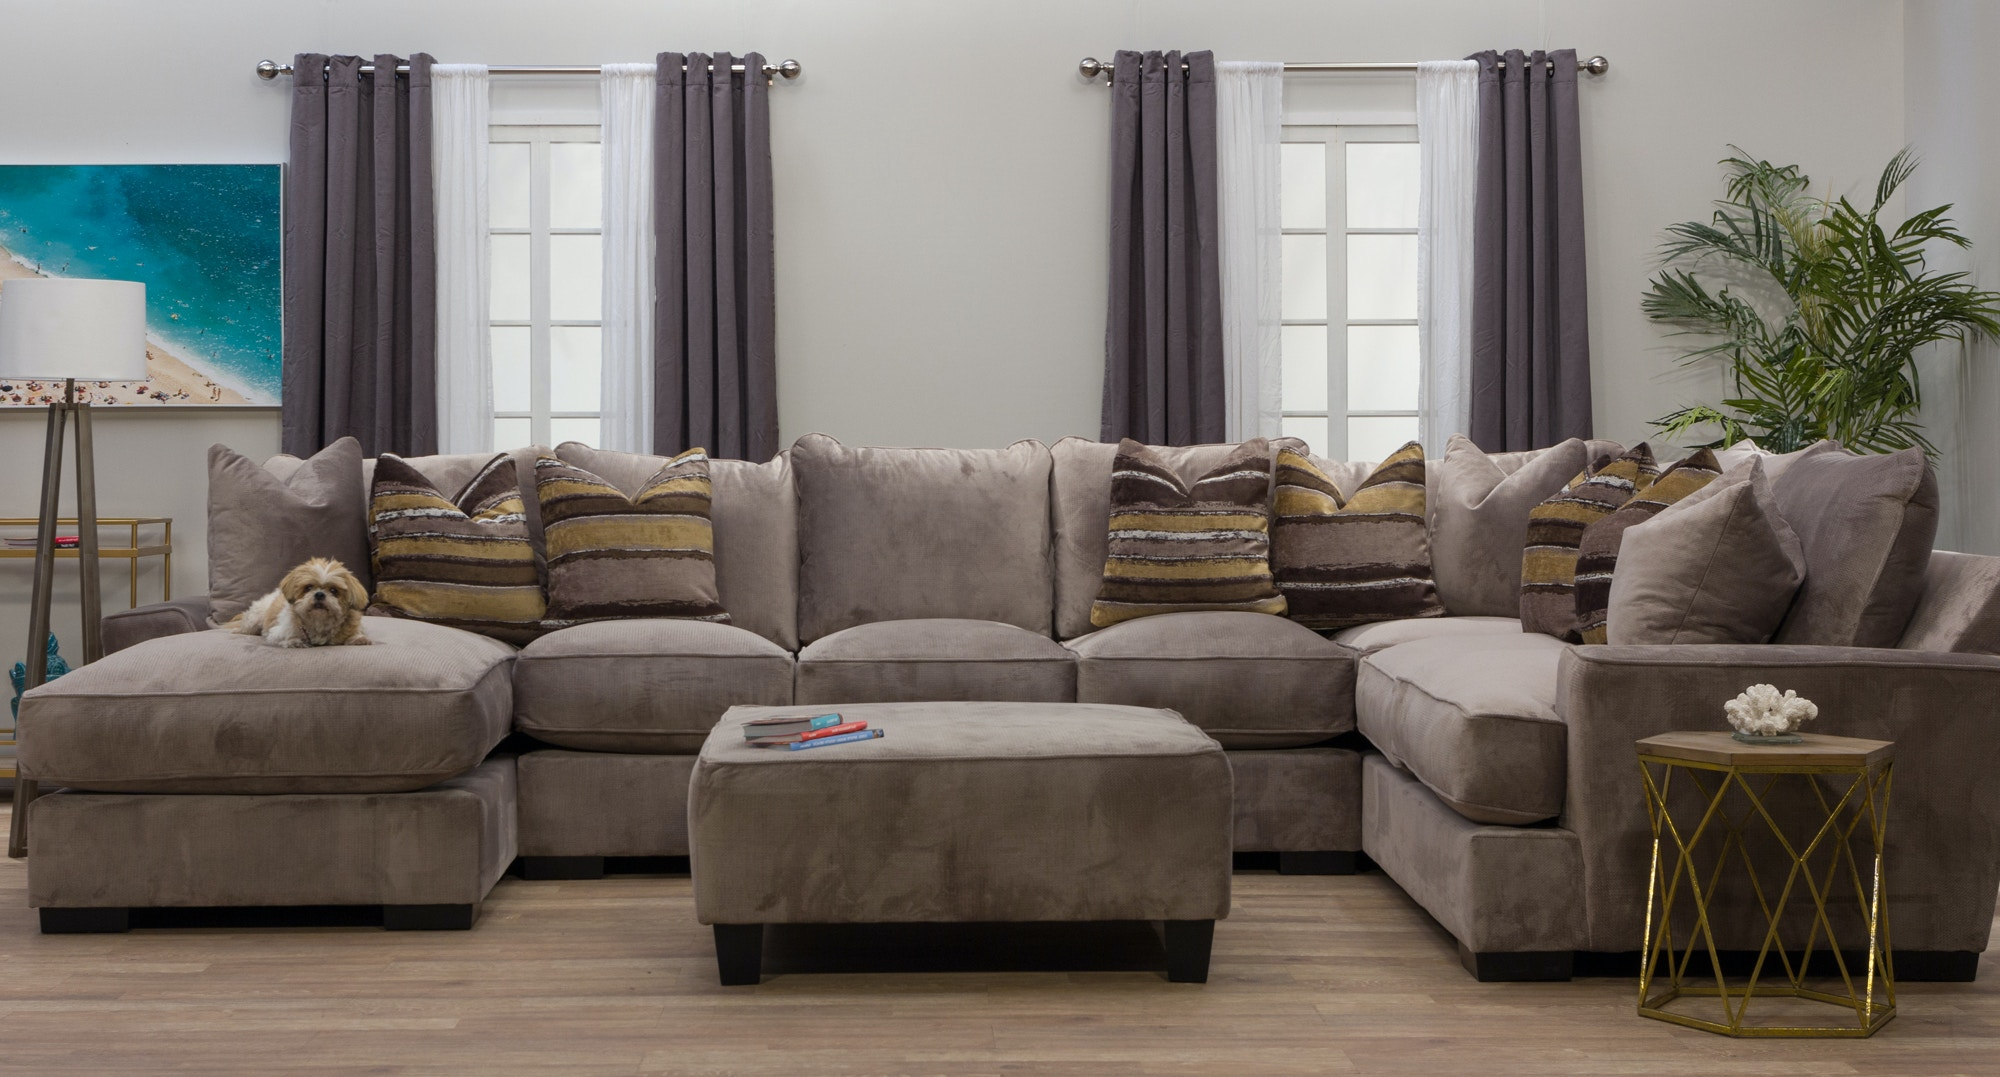 The Serendipity Left Chaise Sectional With Ottoman 359834 Includes Right Arm Facing Sofa Armless And Tail